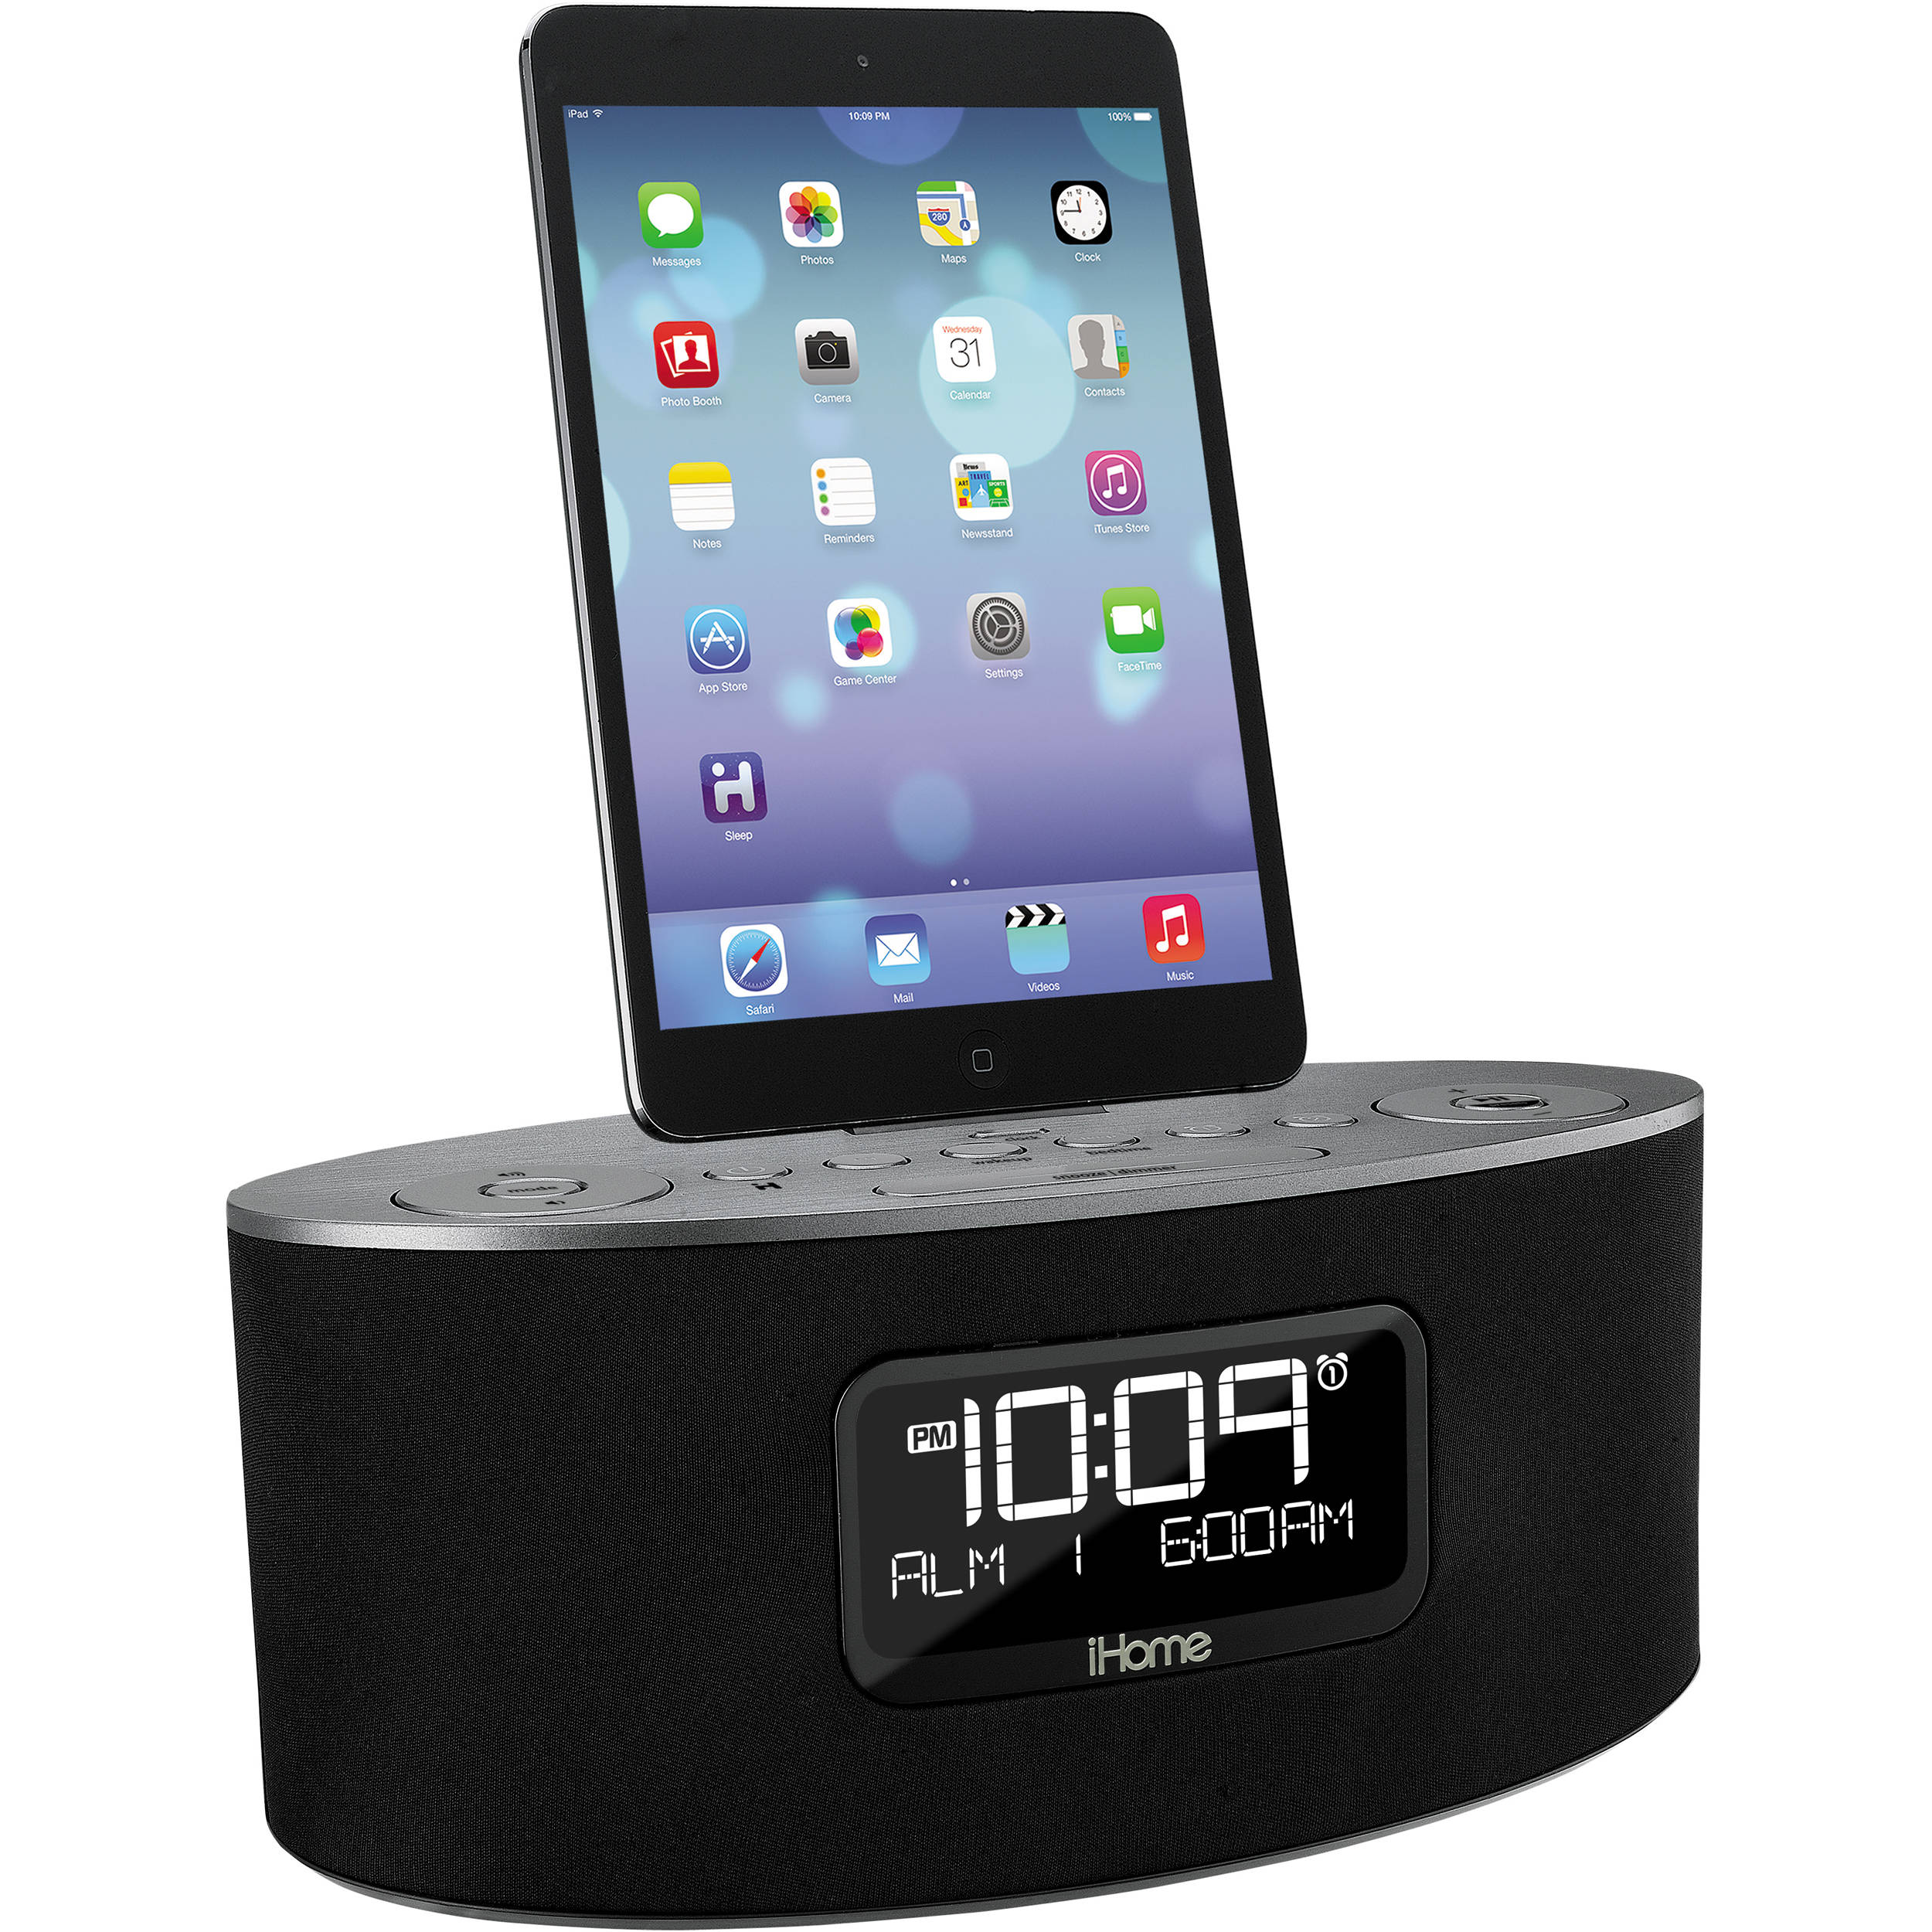 ihome idl46 stereo dual alarm clock radio ipad iphone idl46gc. Black Bedroom Furniture Sets. Home Design Ideas